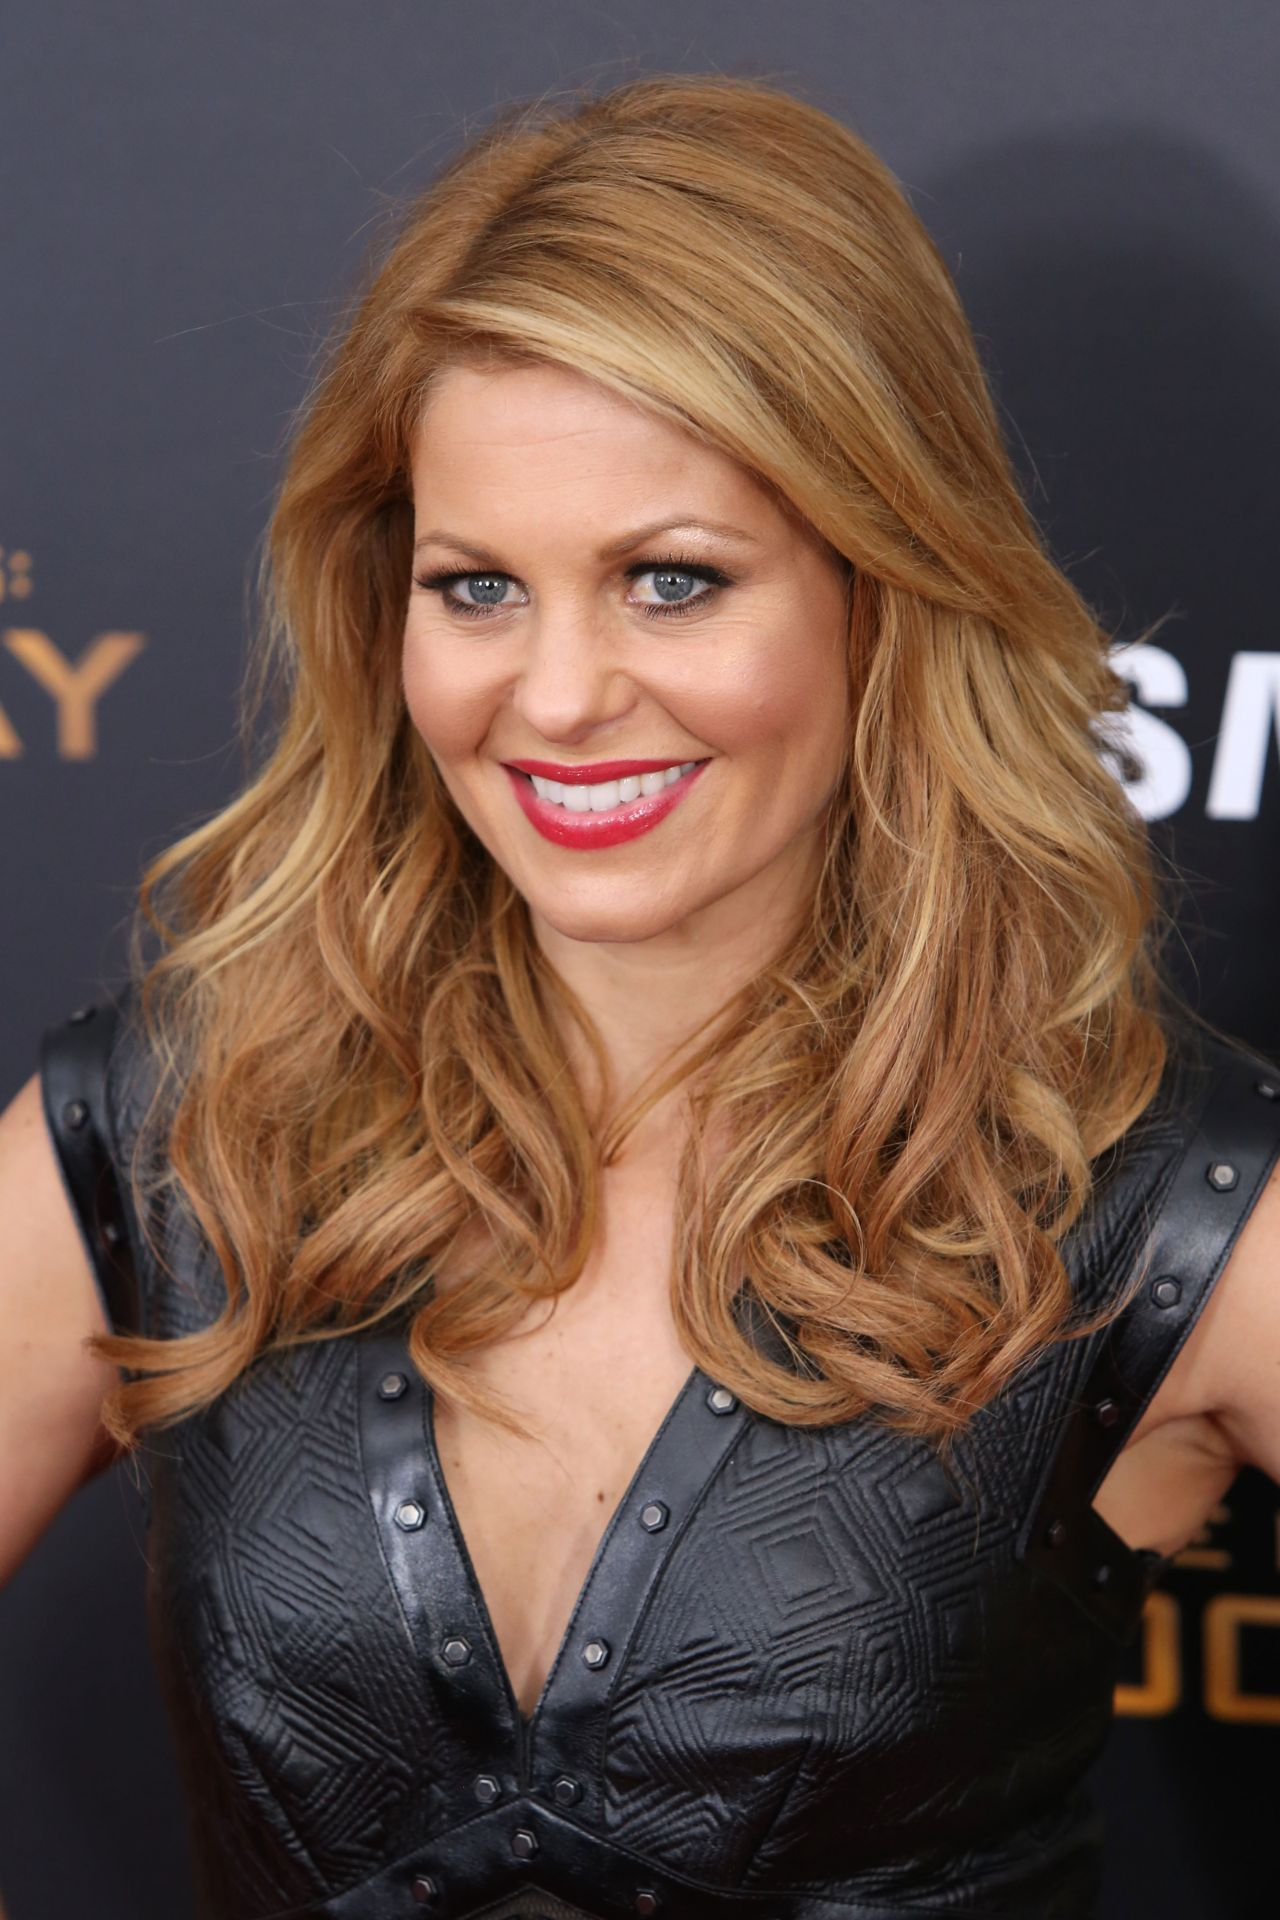 candace cameron bure weight losscandace cameron bure photos, candace cameron bure photo gallery, candace cameron bure twitter, candace cameron bure, candace cameron bure's husband, candace cameron bure dancing with the stars, candace cameron bure instagram, candace cameron bure wedding, candace cameron bure movies, candace cameron bure diet, candace cameron bure weight loss, candace cameron bure the view, candace cameron bure net worth, candace cameron bure height, candace cameron bure dwts, candace cameron bure hallmark movies, candace cameron bure feet, candace cameron bure blog, candace cameron bure imdb, candace cameron bure christmas movies